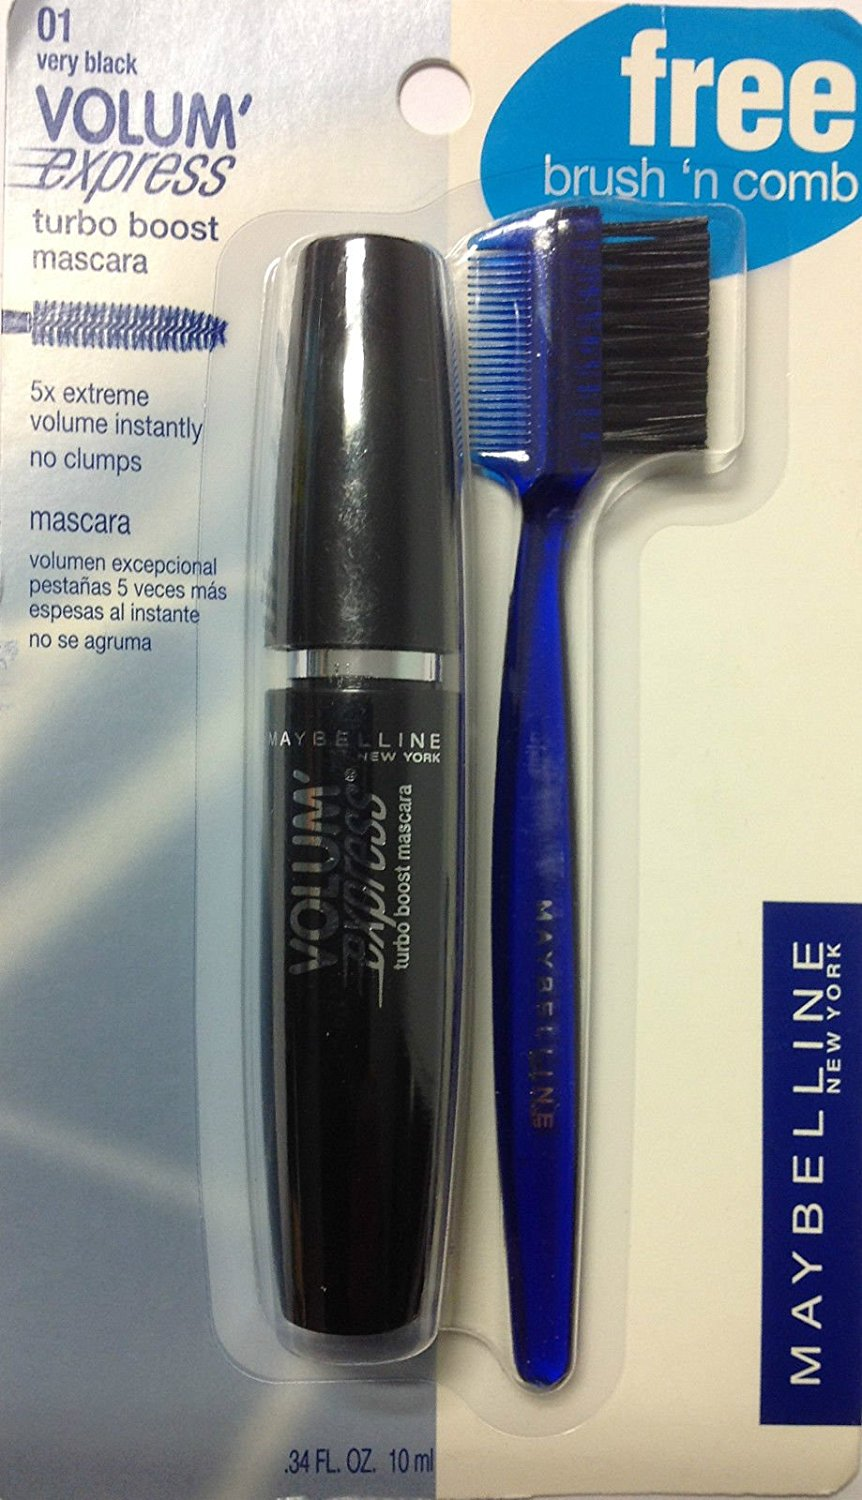 d7a8c6a3316 Maybelline Volume Express Turbo Boost Washable Mascara Very Black with  Bonus Brush'n Comb.